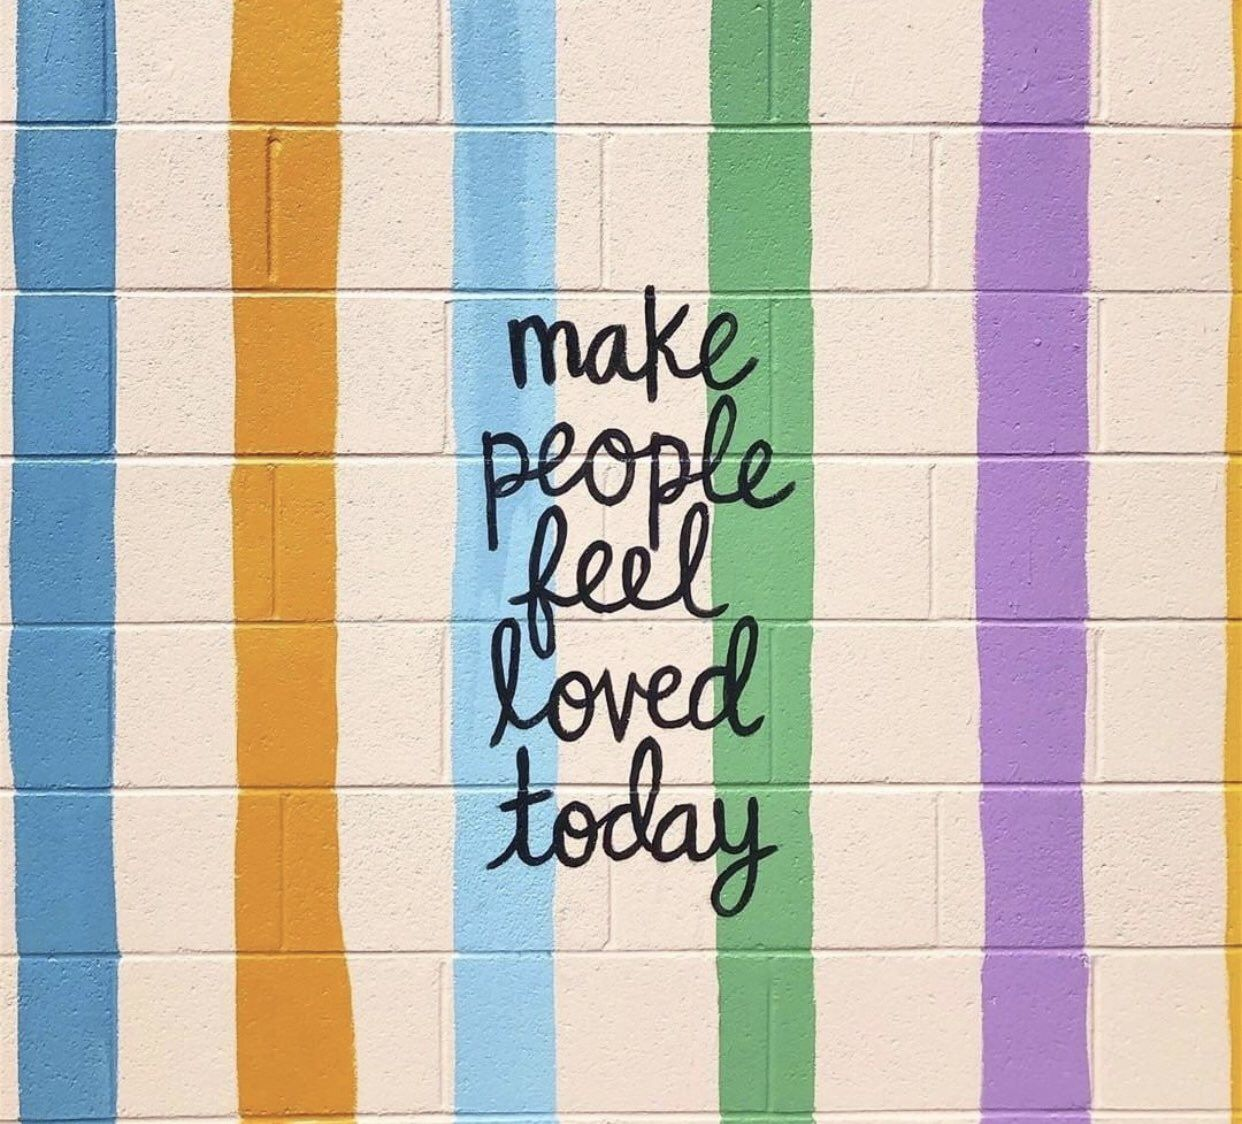 Make people feel loved today | Inspirational words